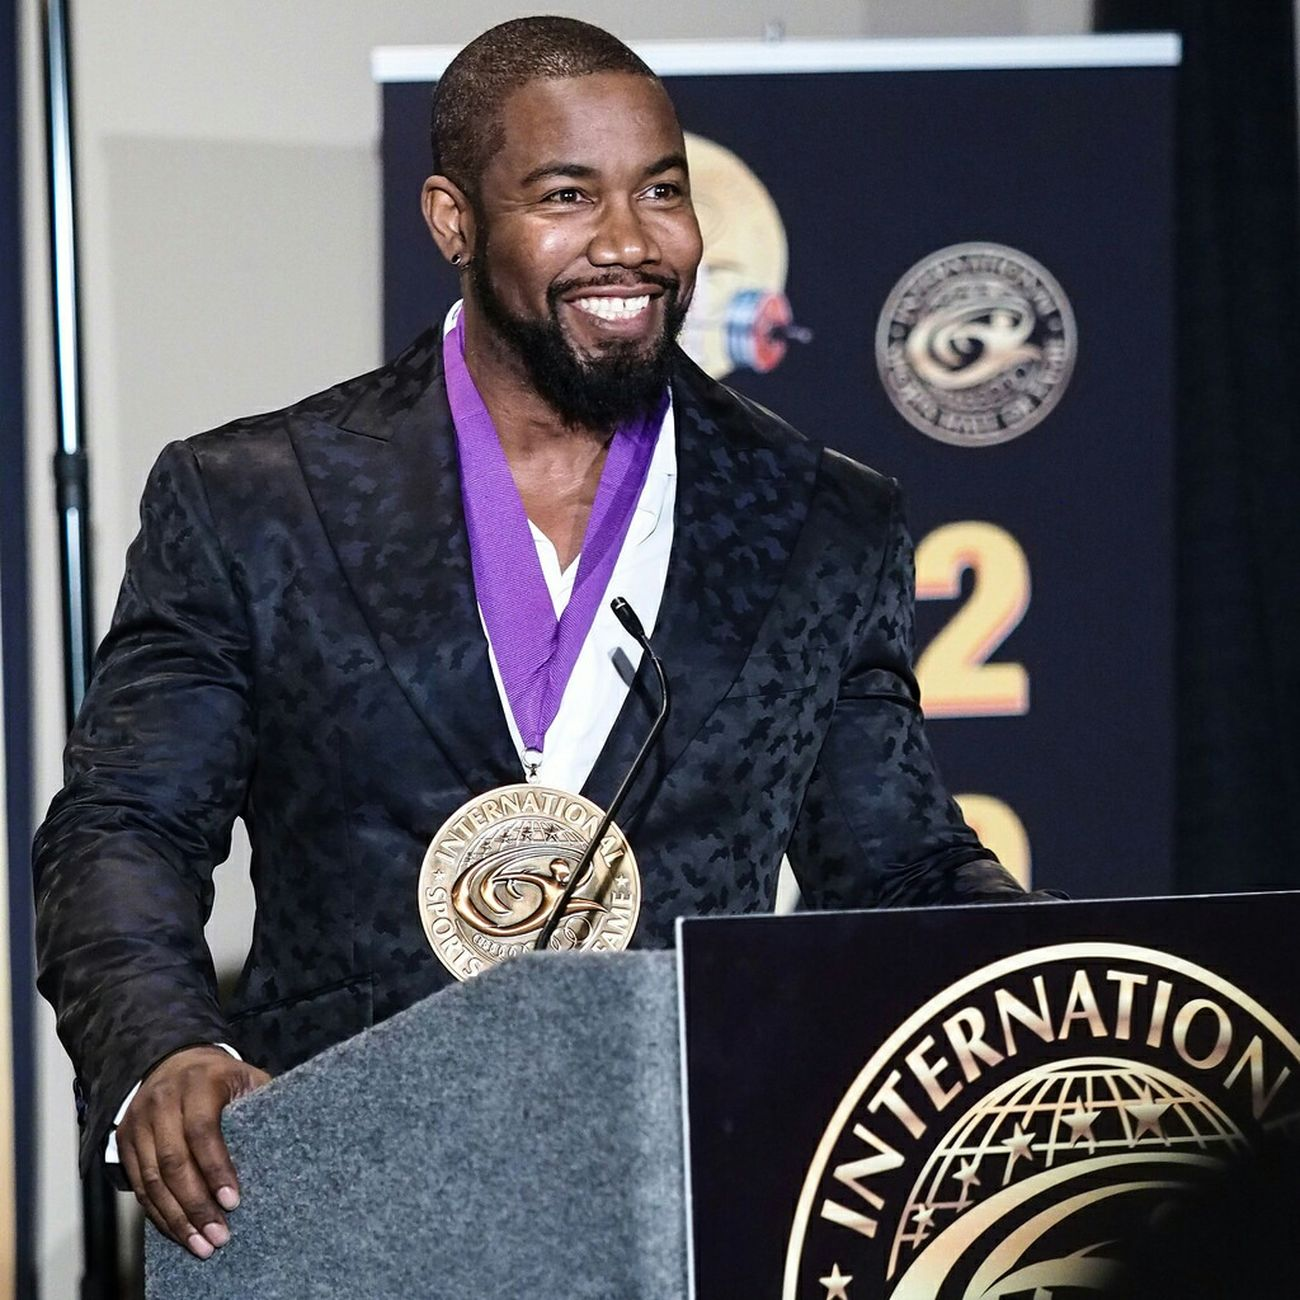 Michaeljaiwhite Martialarts Actor Inductee Internationalsportshalloffame Arnoldfitnessexpo